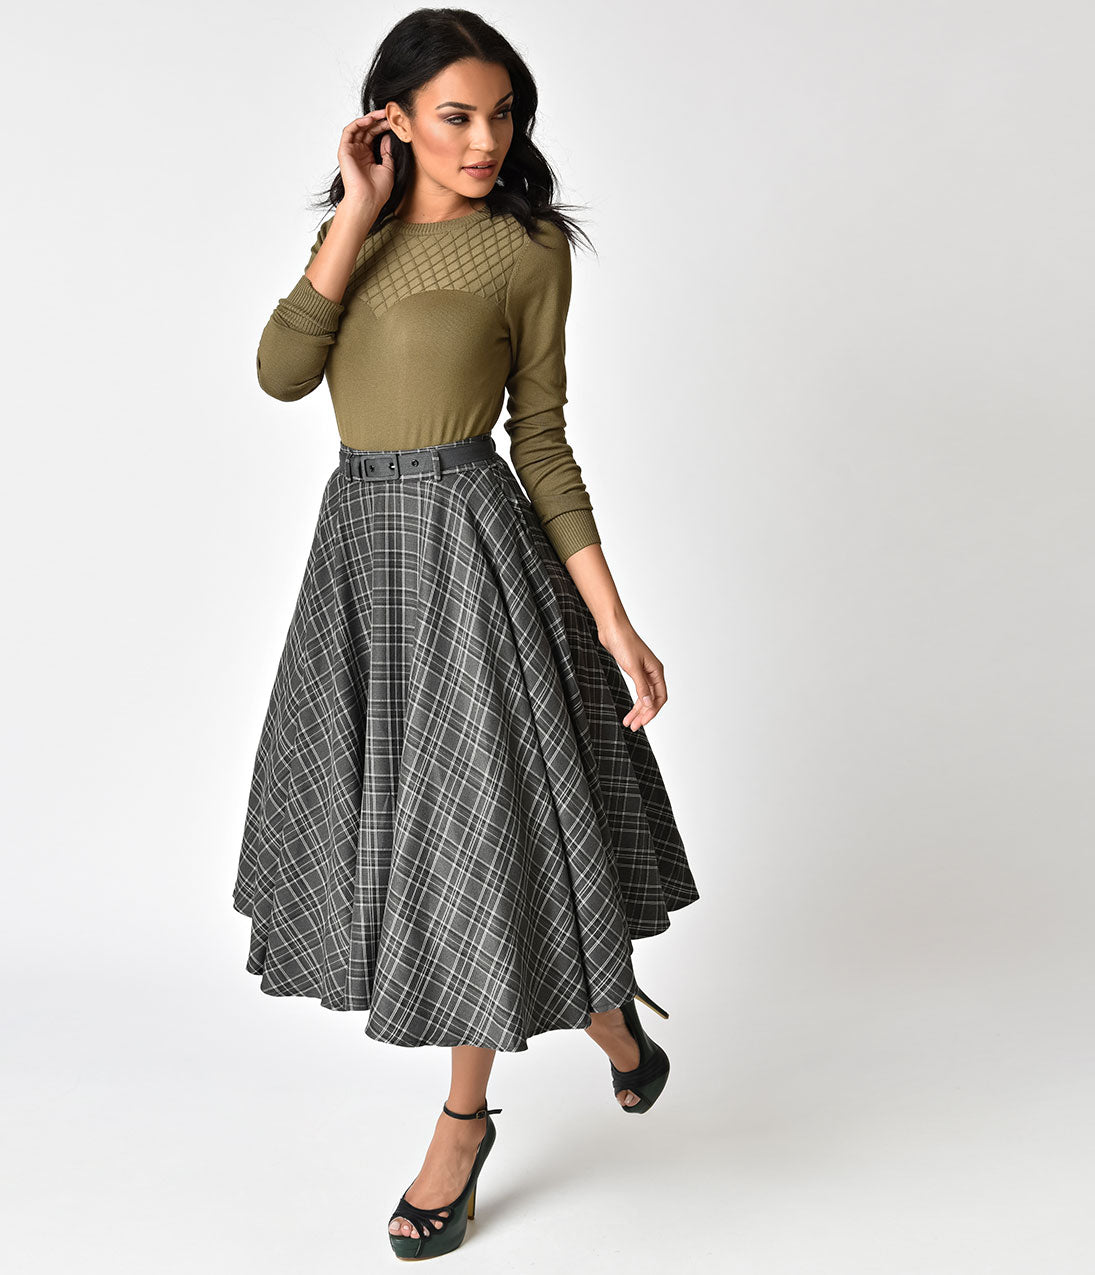 Retro Skirts: Vintage, Pencil, Circle, & Plus Sizes 1940s Swing Skirt $58.00 AT vintagedancer.com